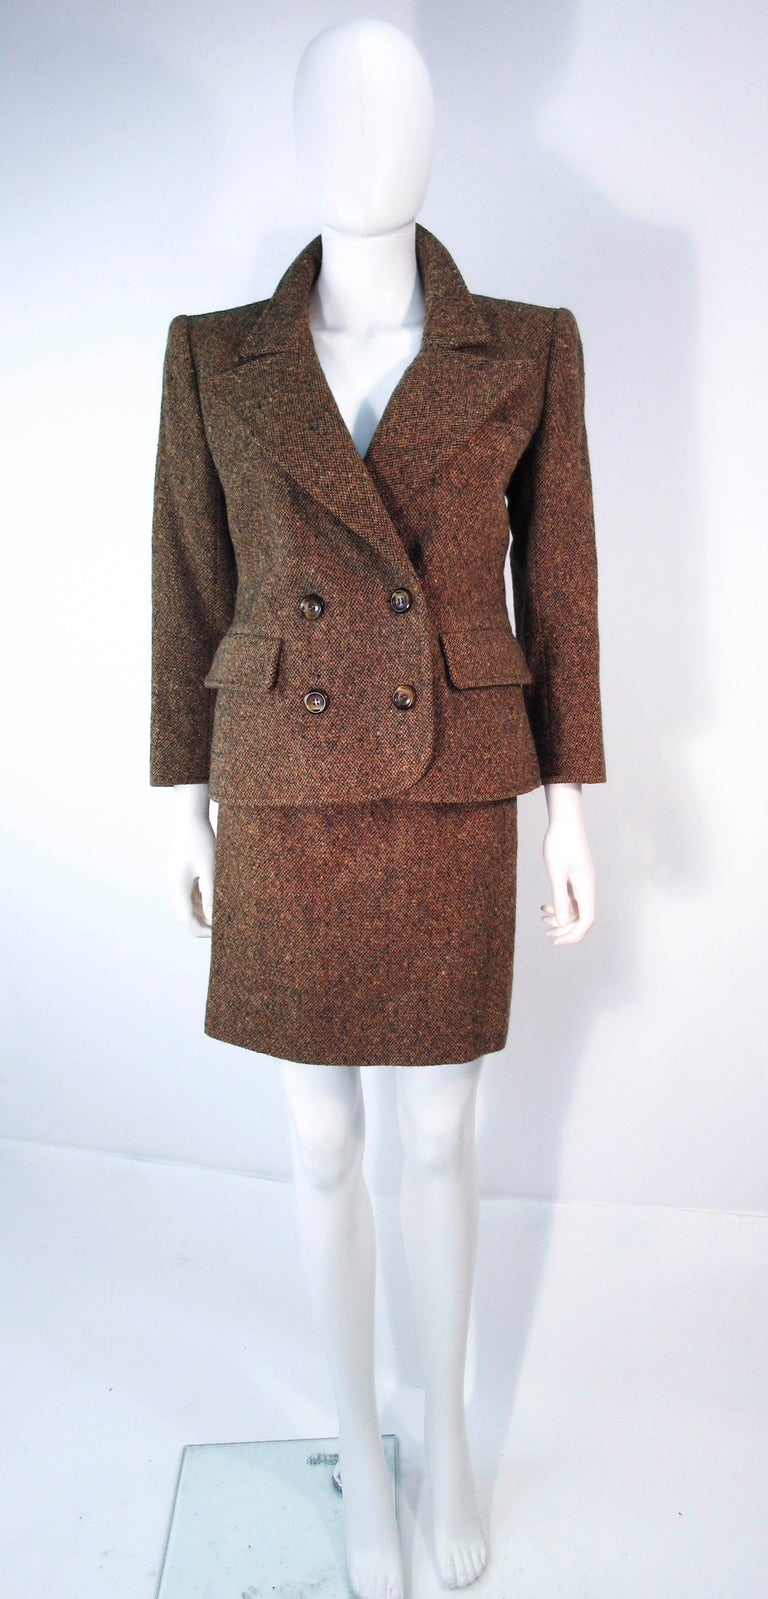 YVES SAINT LAURENT 1970's Brown & Green Skirt Suit Size 4 6 In Excellent Condition For Sale In Los Angeles, CA